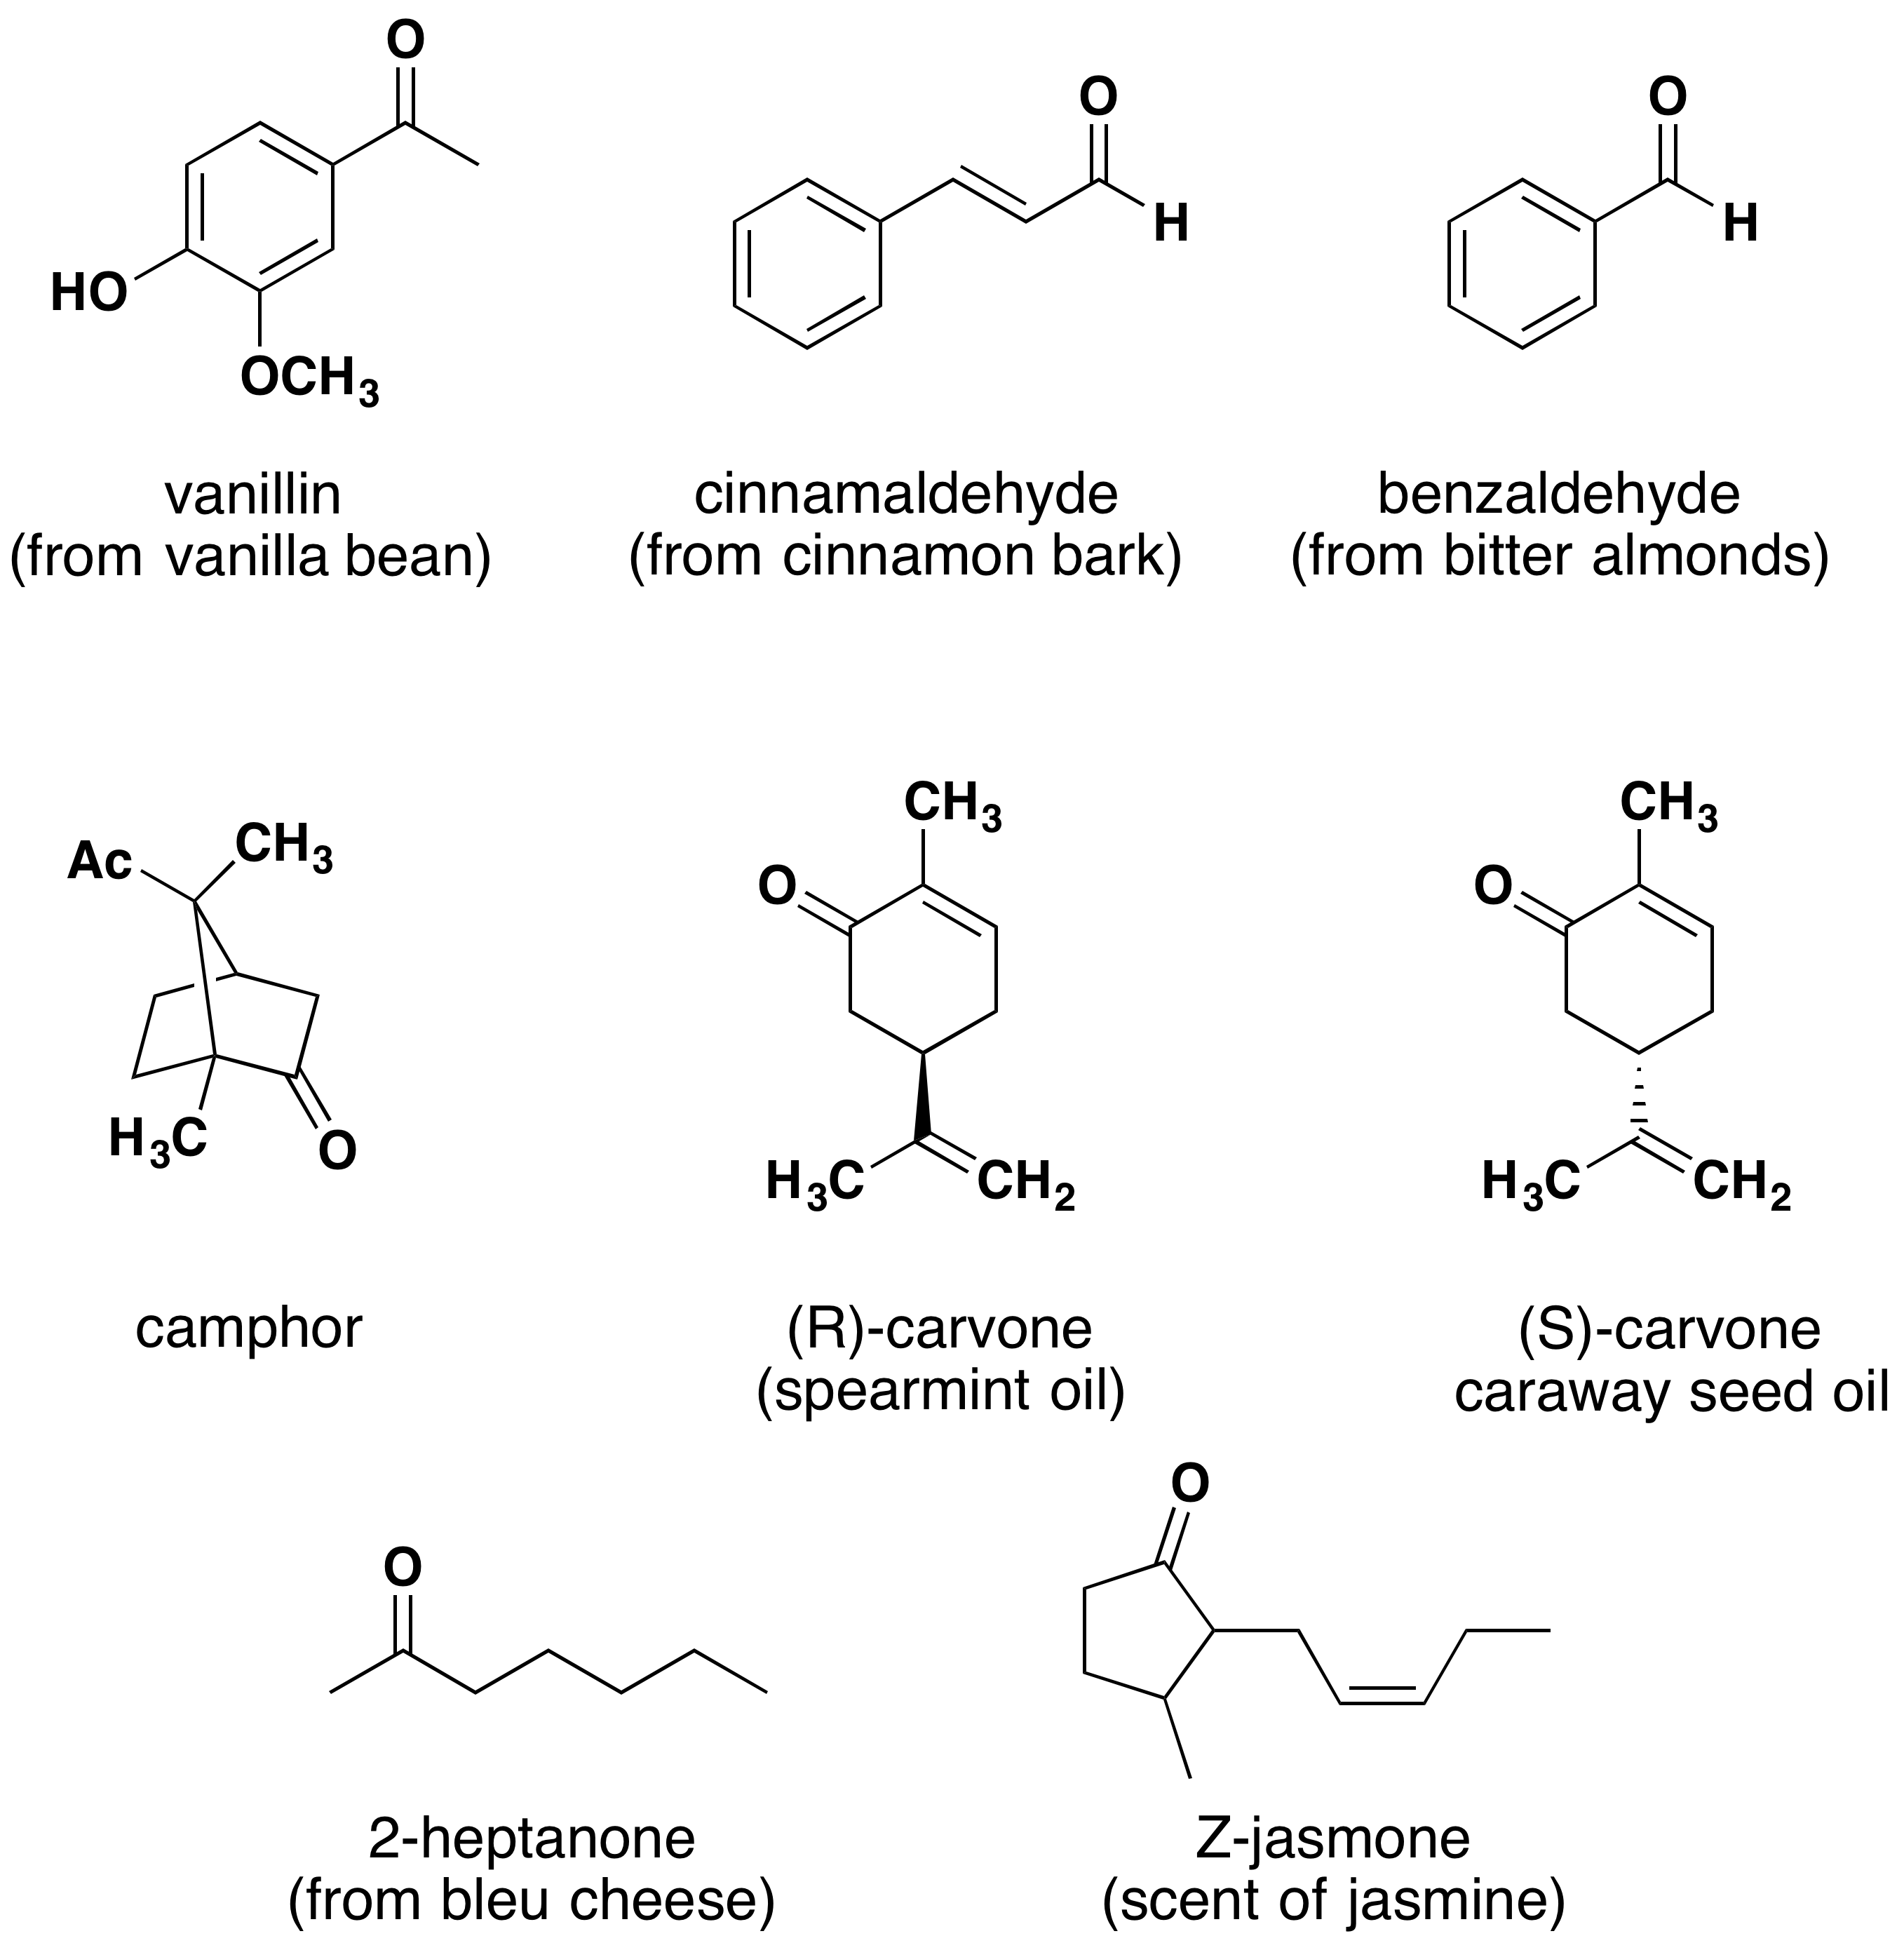 Natural Occurrence Of Aldehydes And Ketones